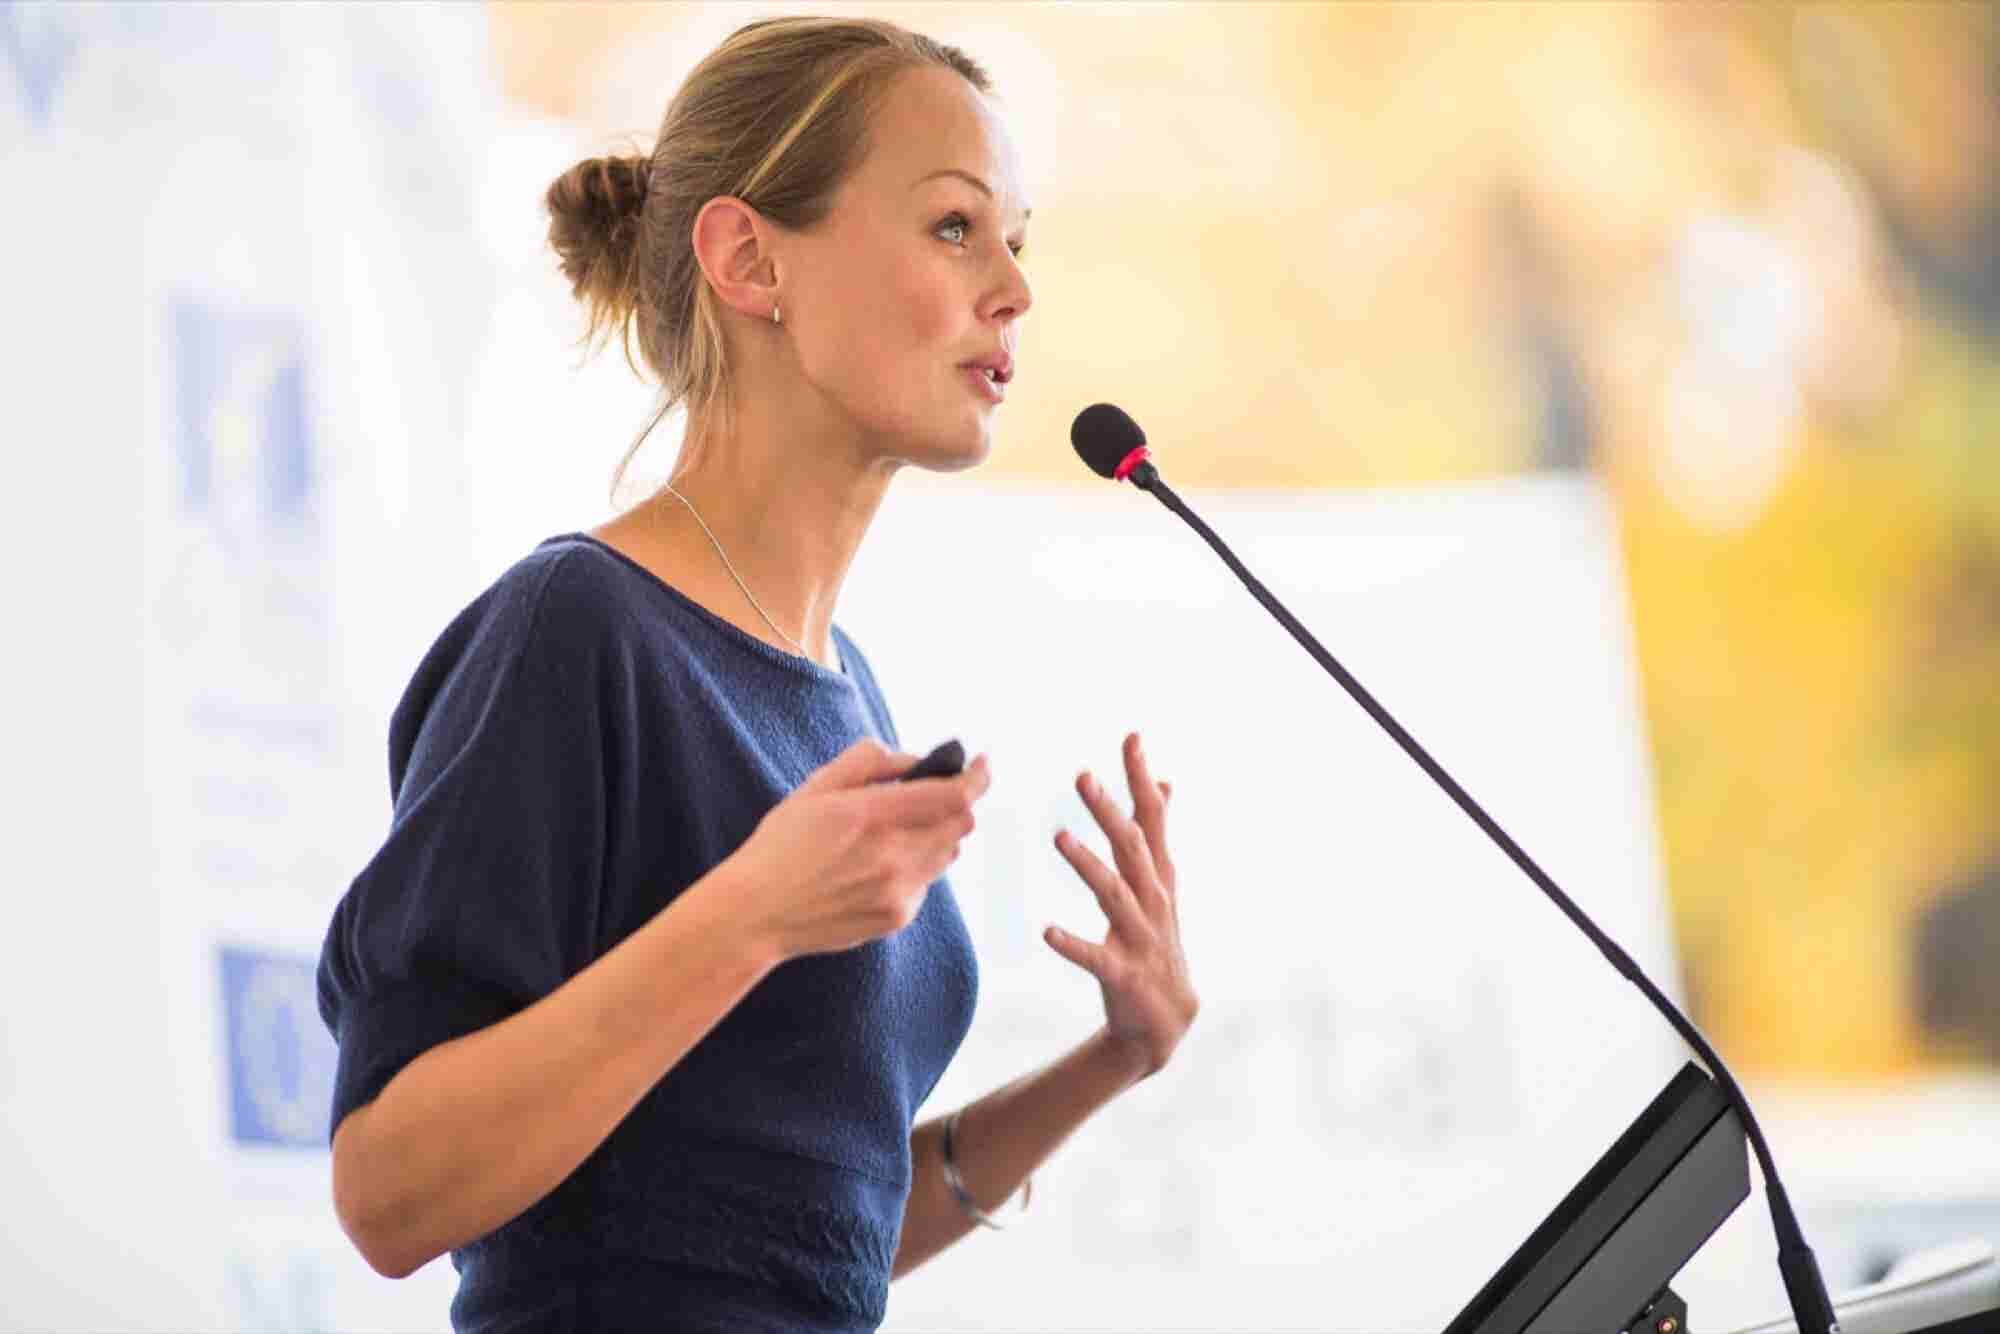 10 Strategies to Prepare for Speaking Engagements